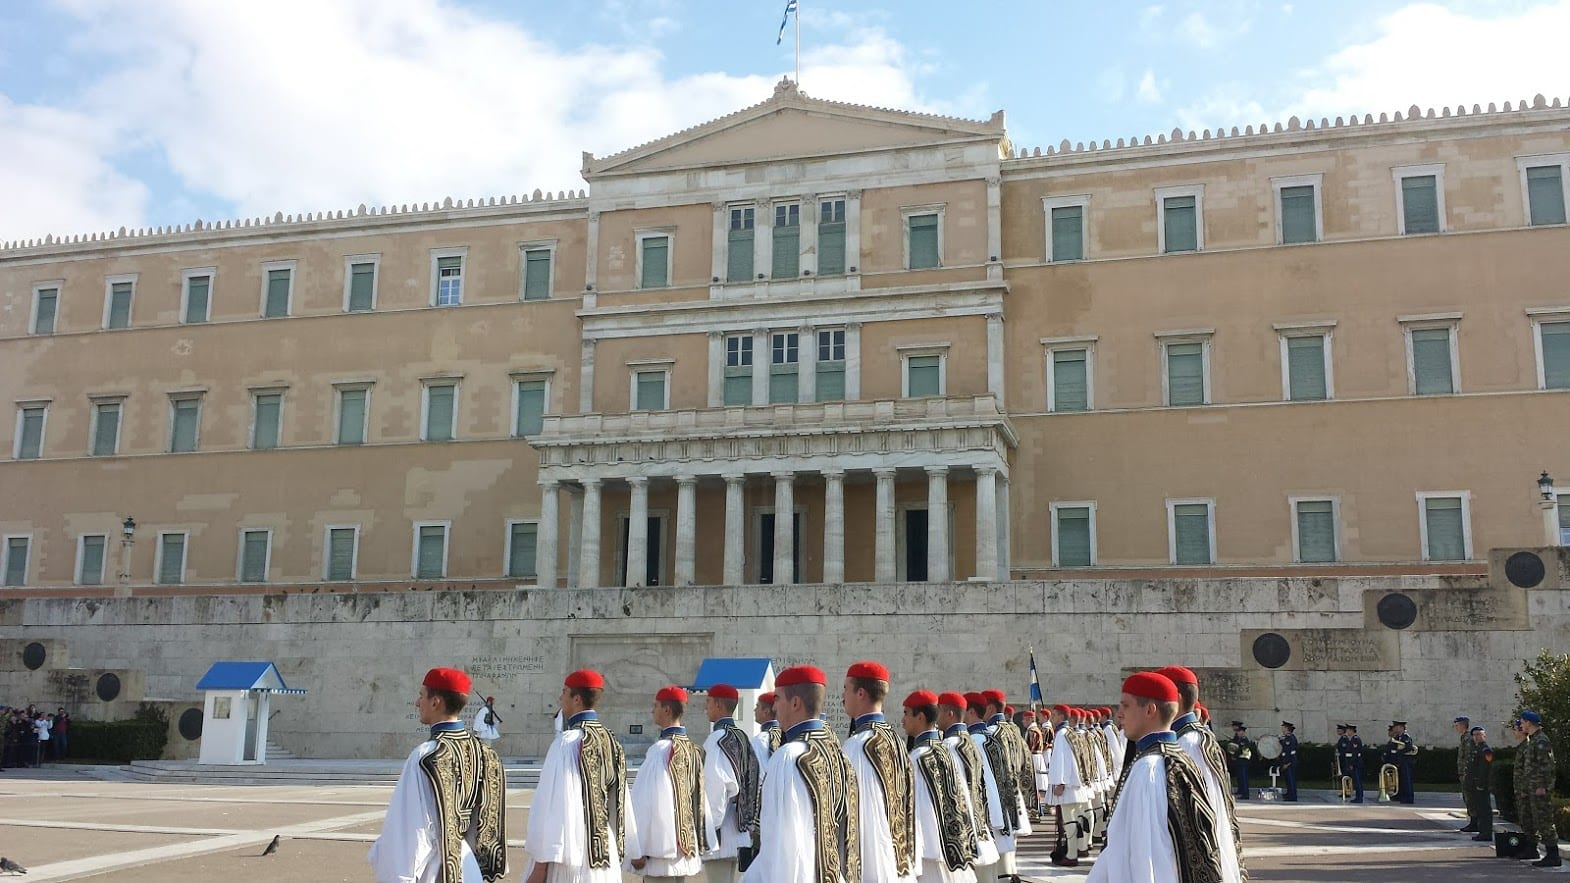 The Evzone in front of the Parliament building in Athens